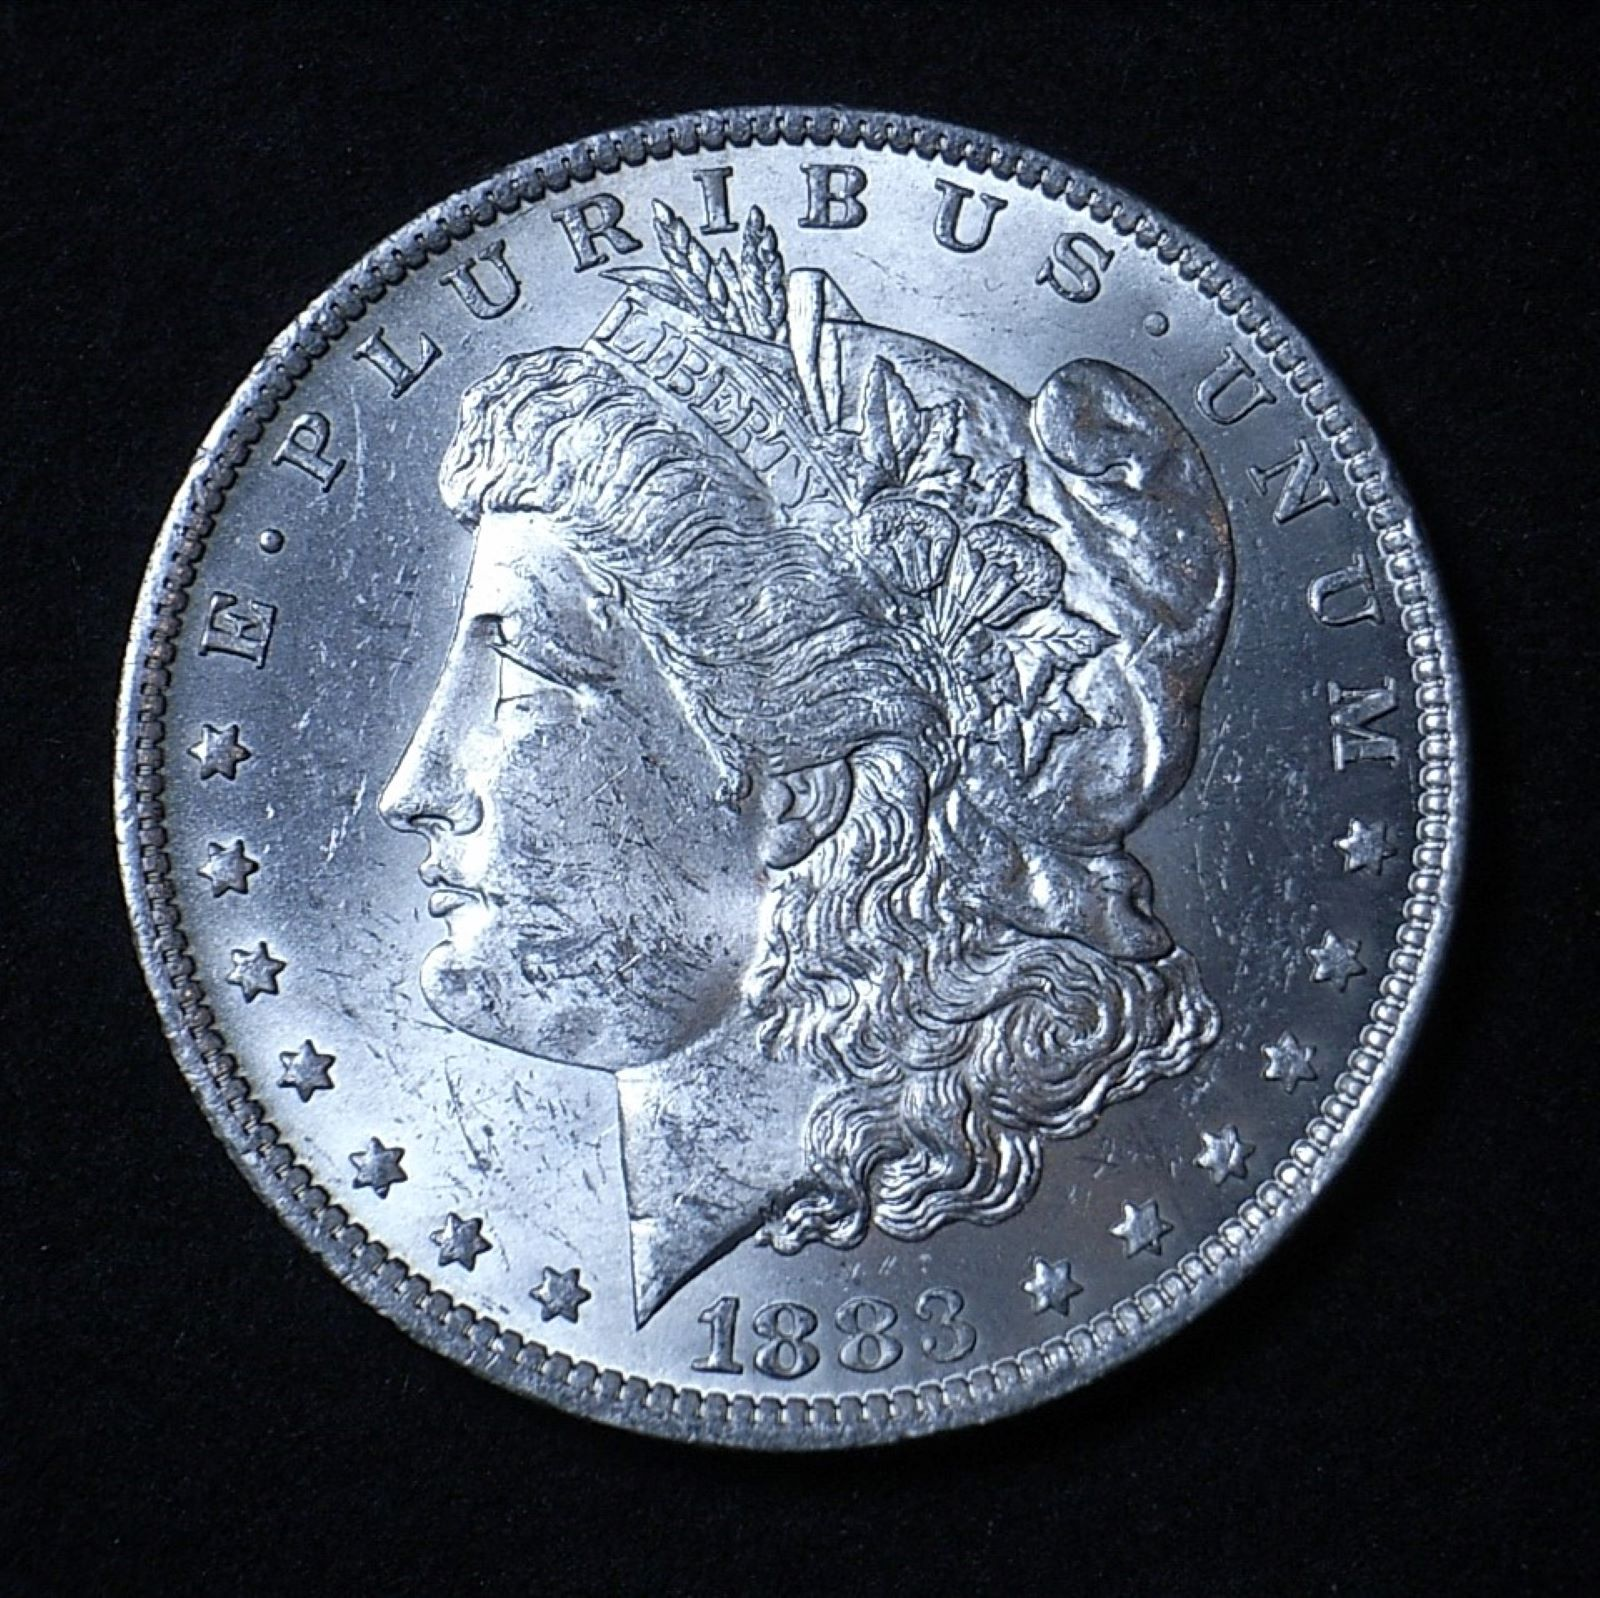 US Morgan Dollar 1883-O obverse close up showing good detail and lustre on the coin